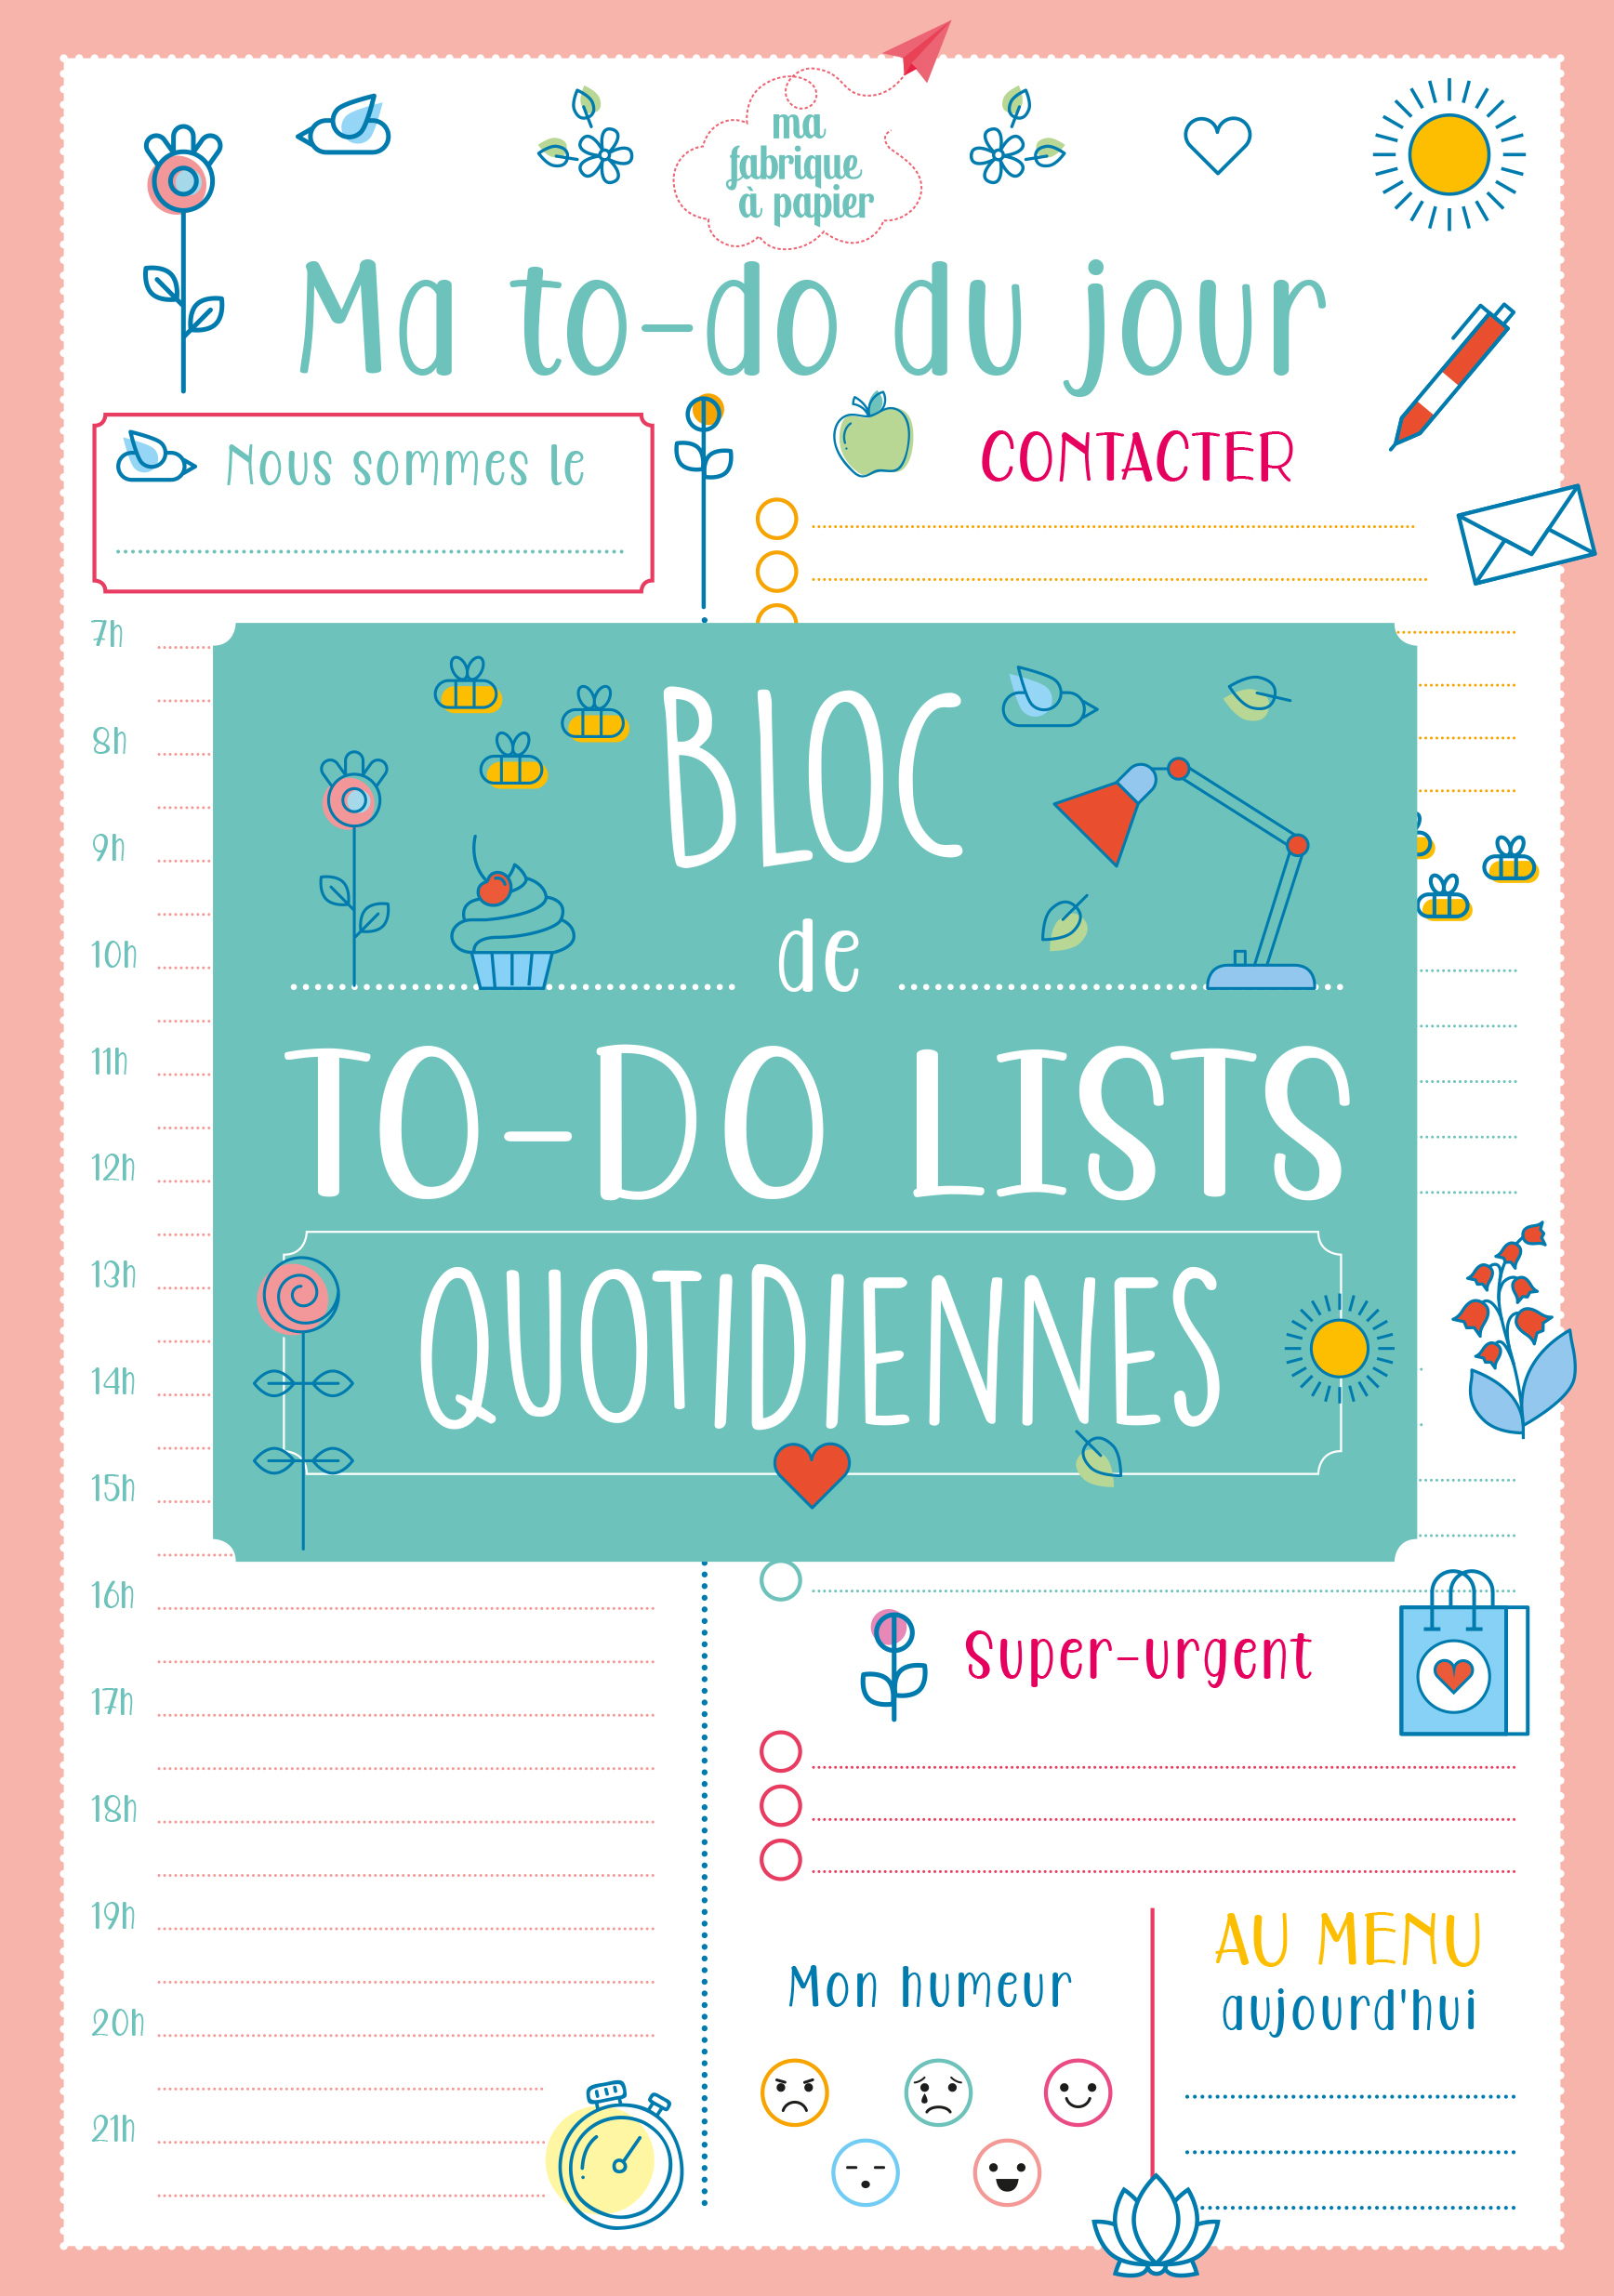 MA TO-DO LIST DU JOUR 2020